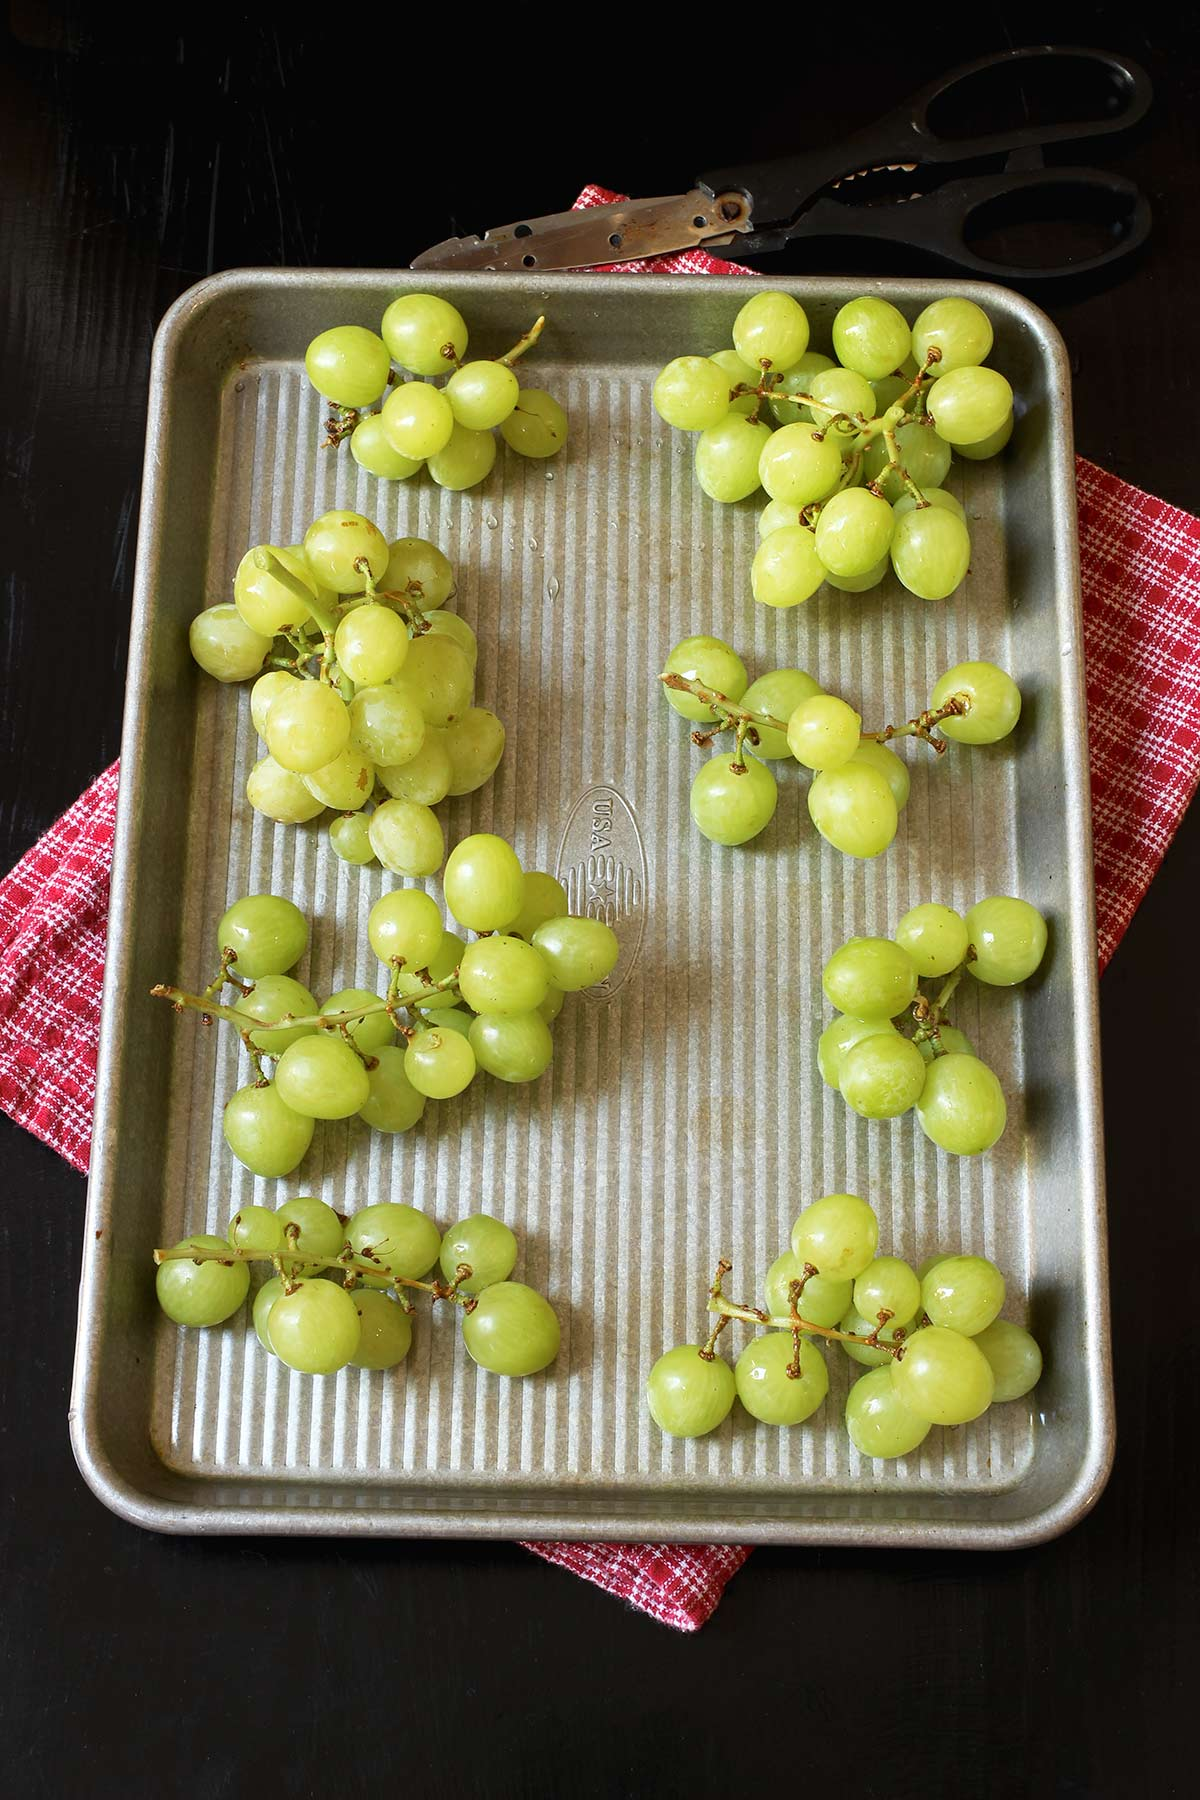 grape clusters laid out on small sheet pan atop a red cloth.